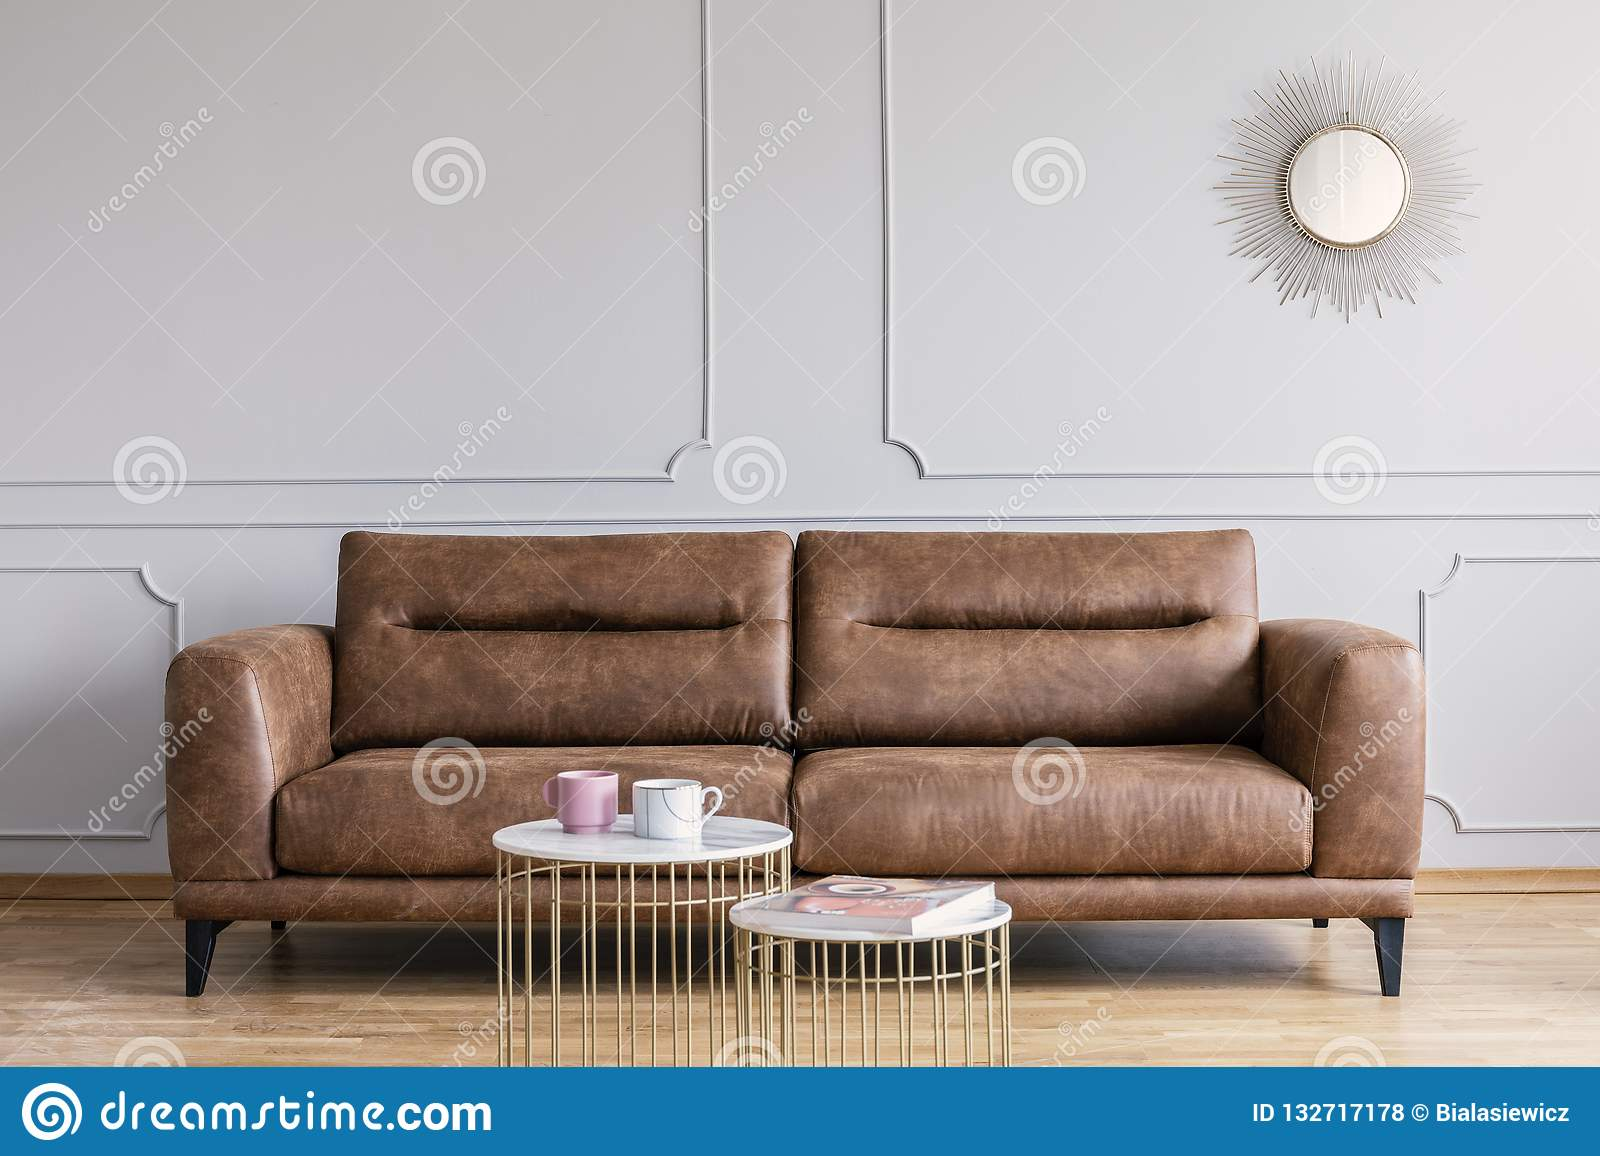 Leather sofa, coffee tables and mirror in a living room interior